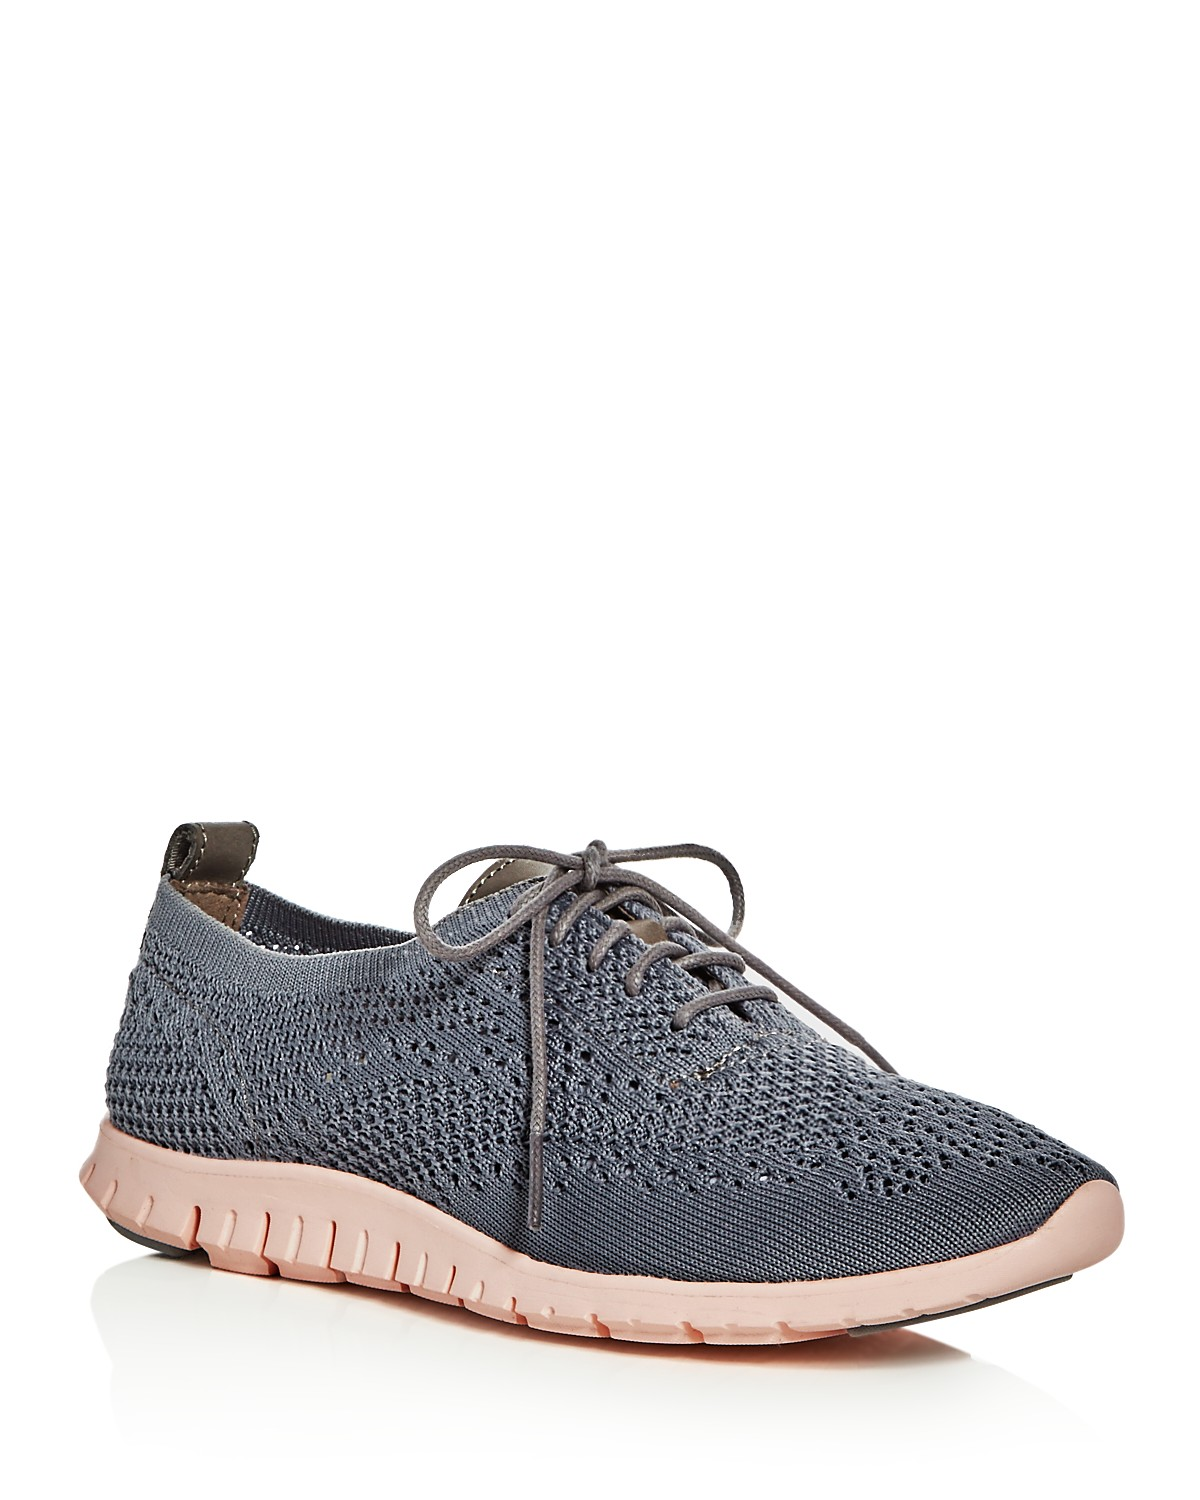 Cole Haan Zerogrand Stitchlite Knit Lace Up Oxford Sneakers kRUme5bLZu